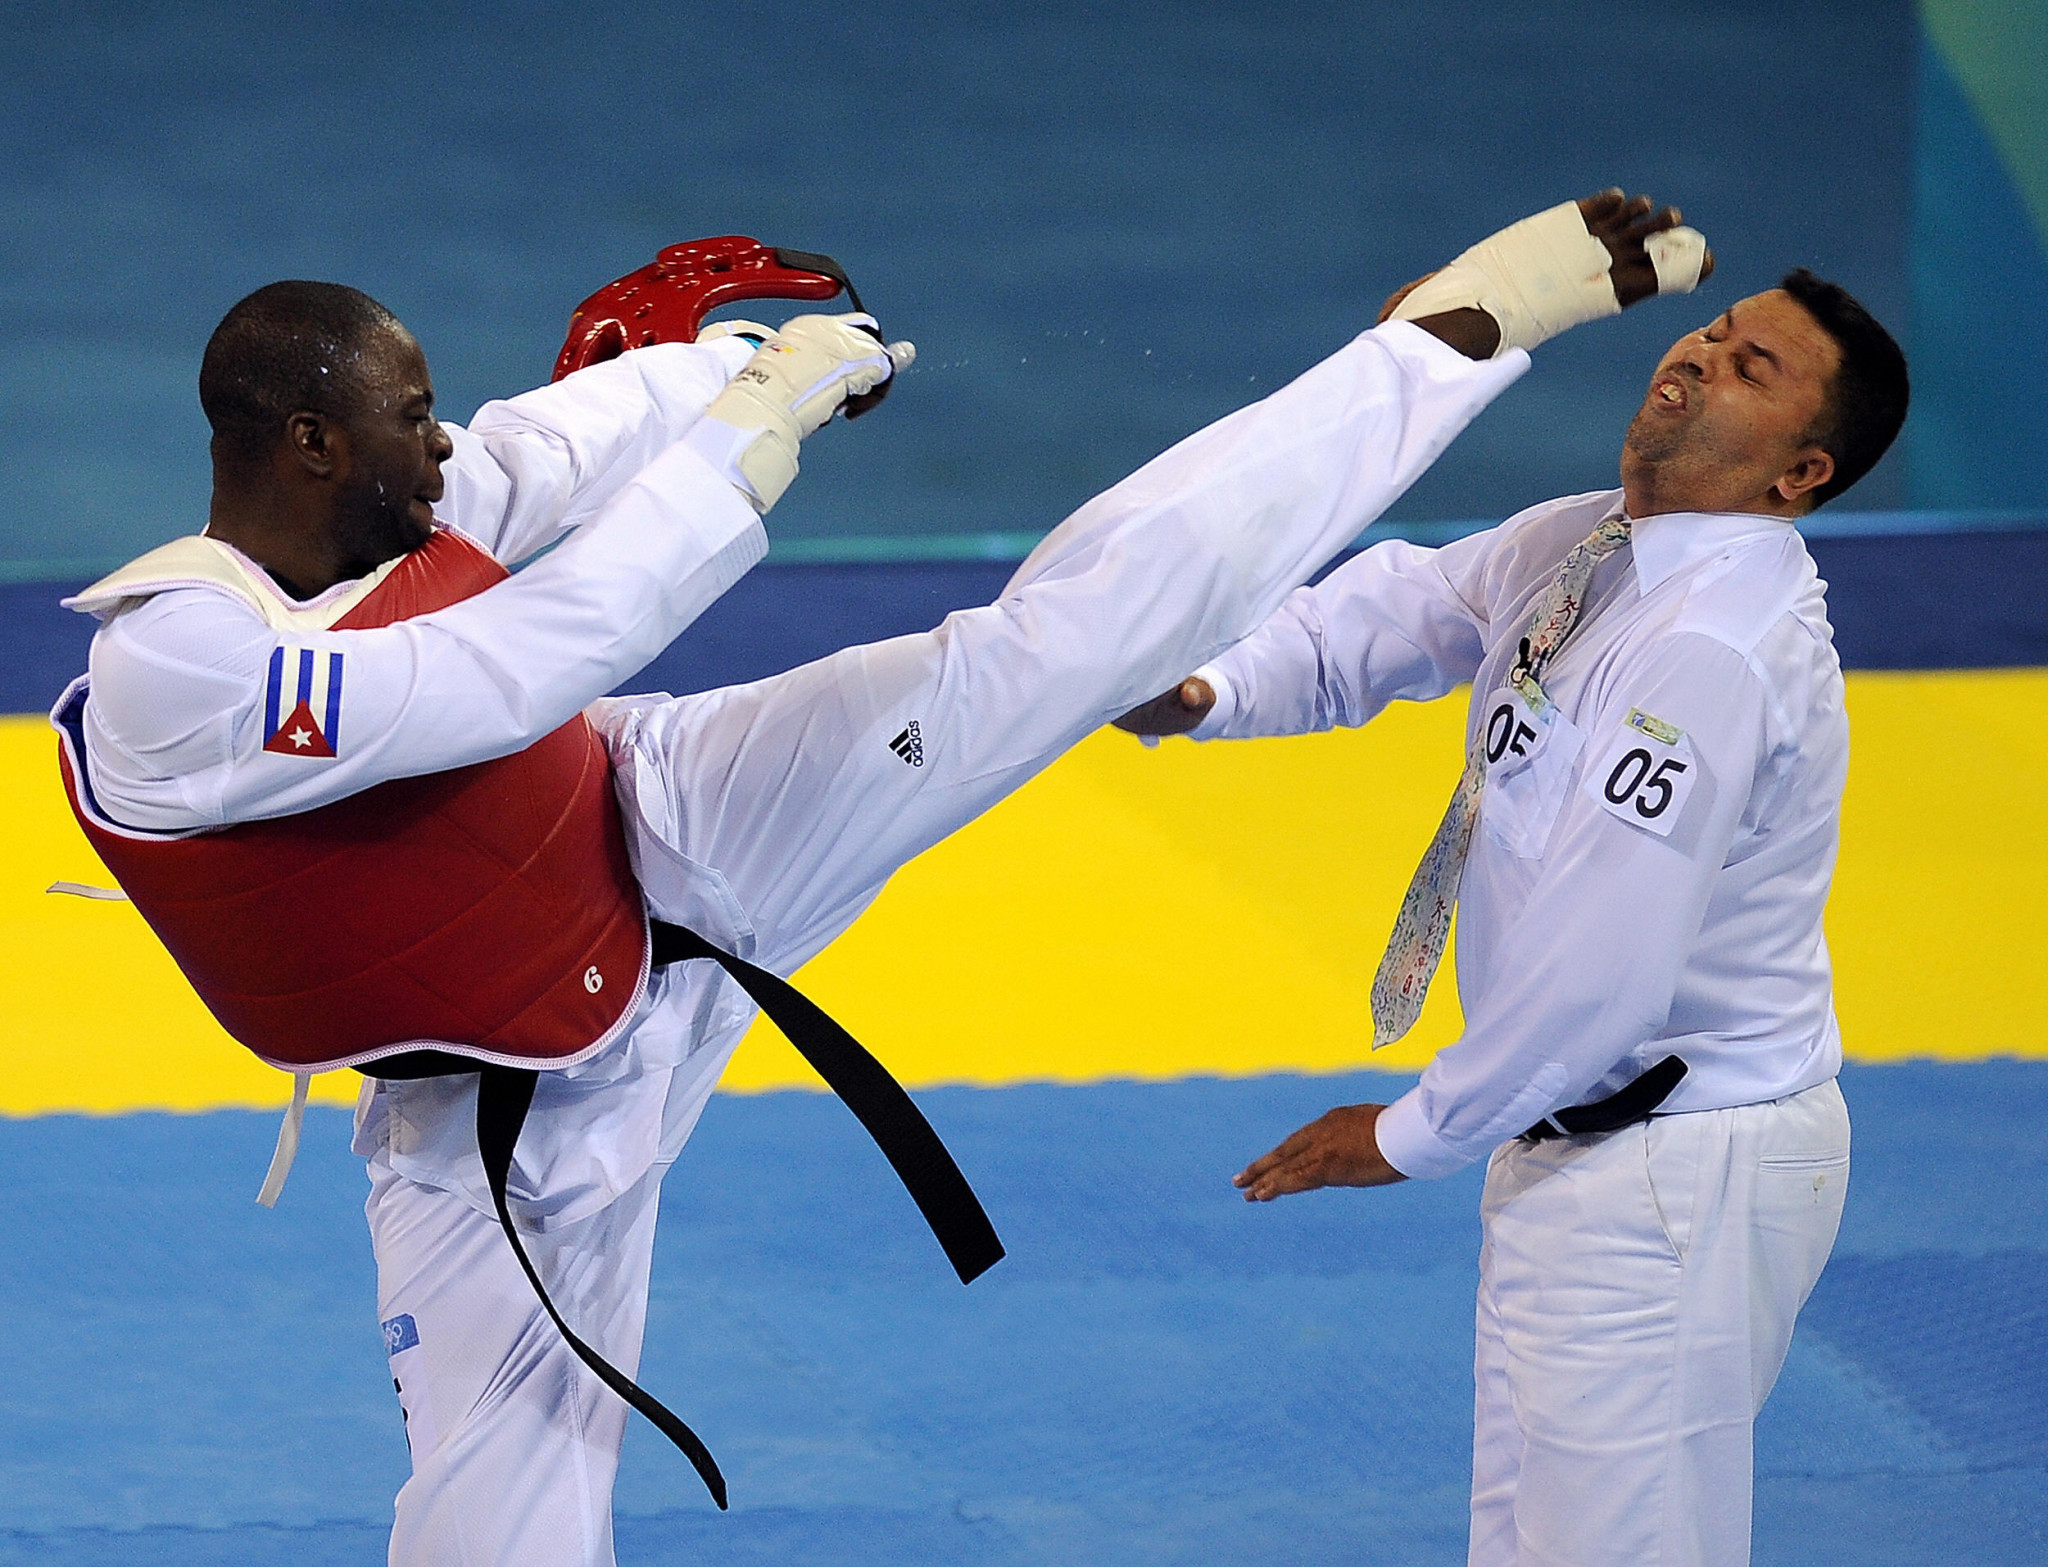 Chakir Chelbat was kicked in the face by Cuba's Ángel Matos at the Beijing 2008 Olympics ©Getty Images